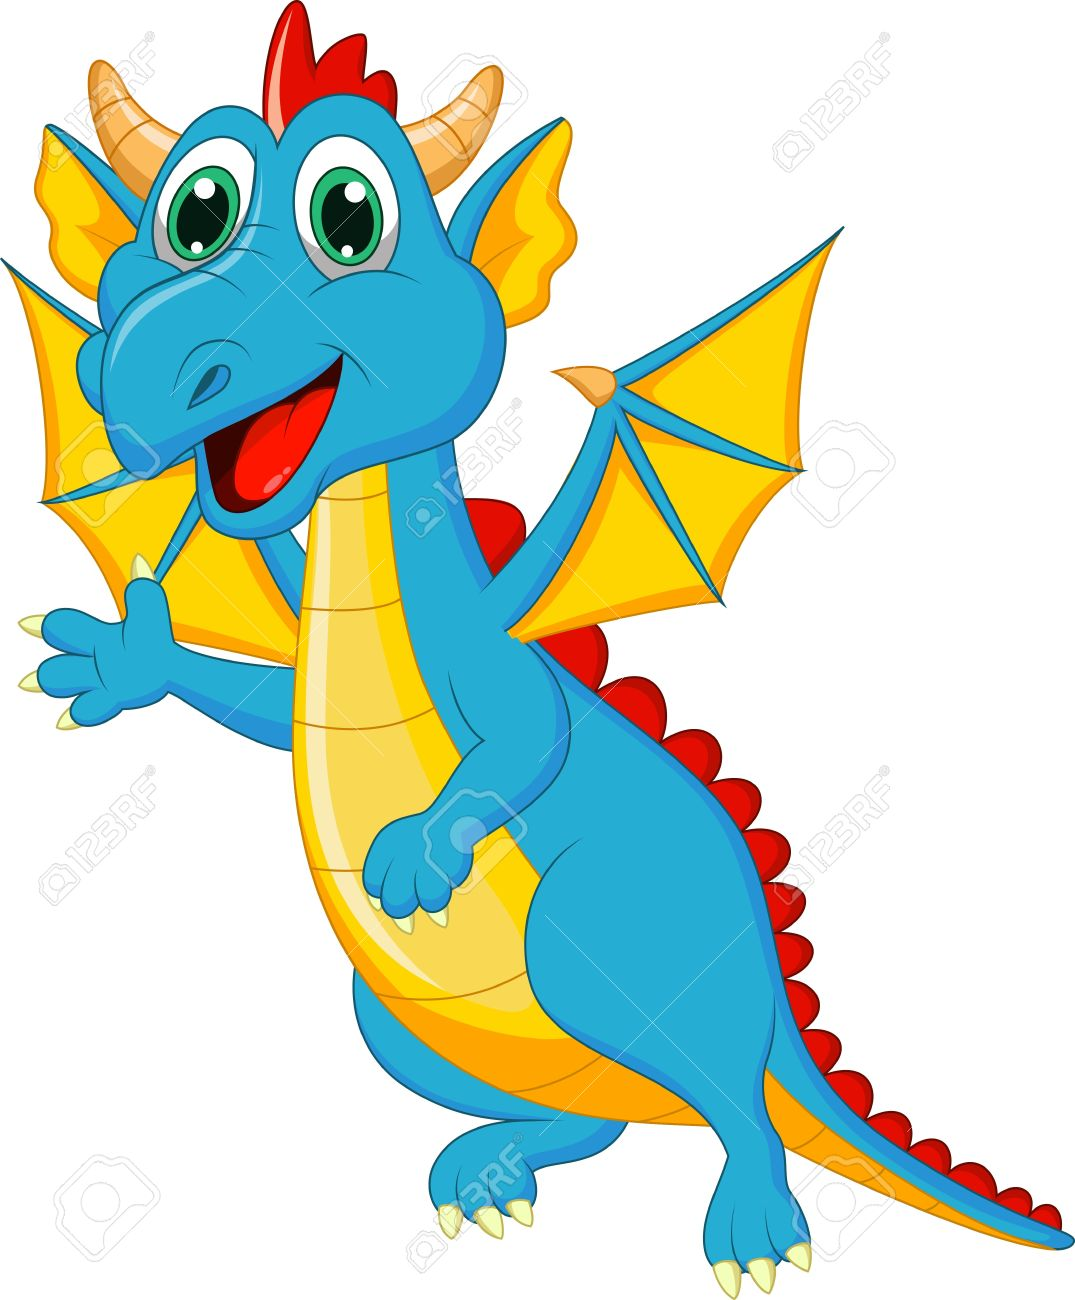 Cute Baby Dragon Cartoon Royalty Free Cliparts, Vectors, And Stock.